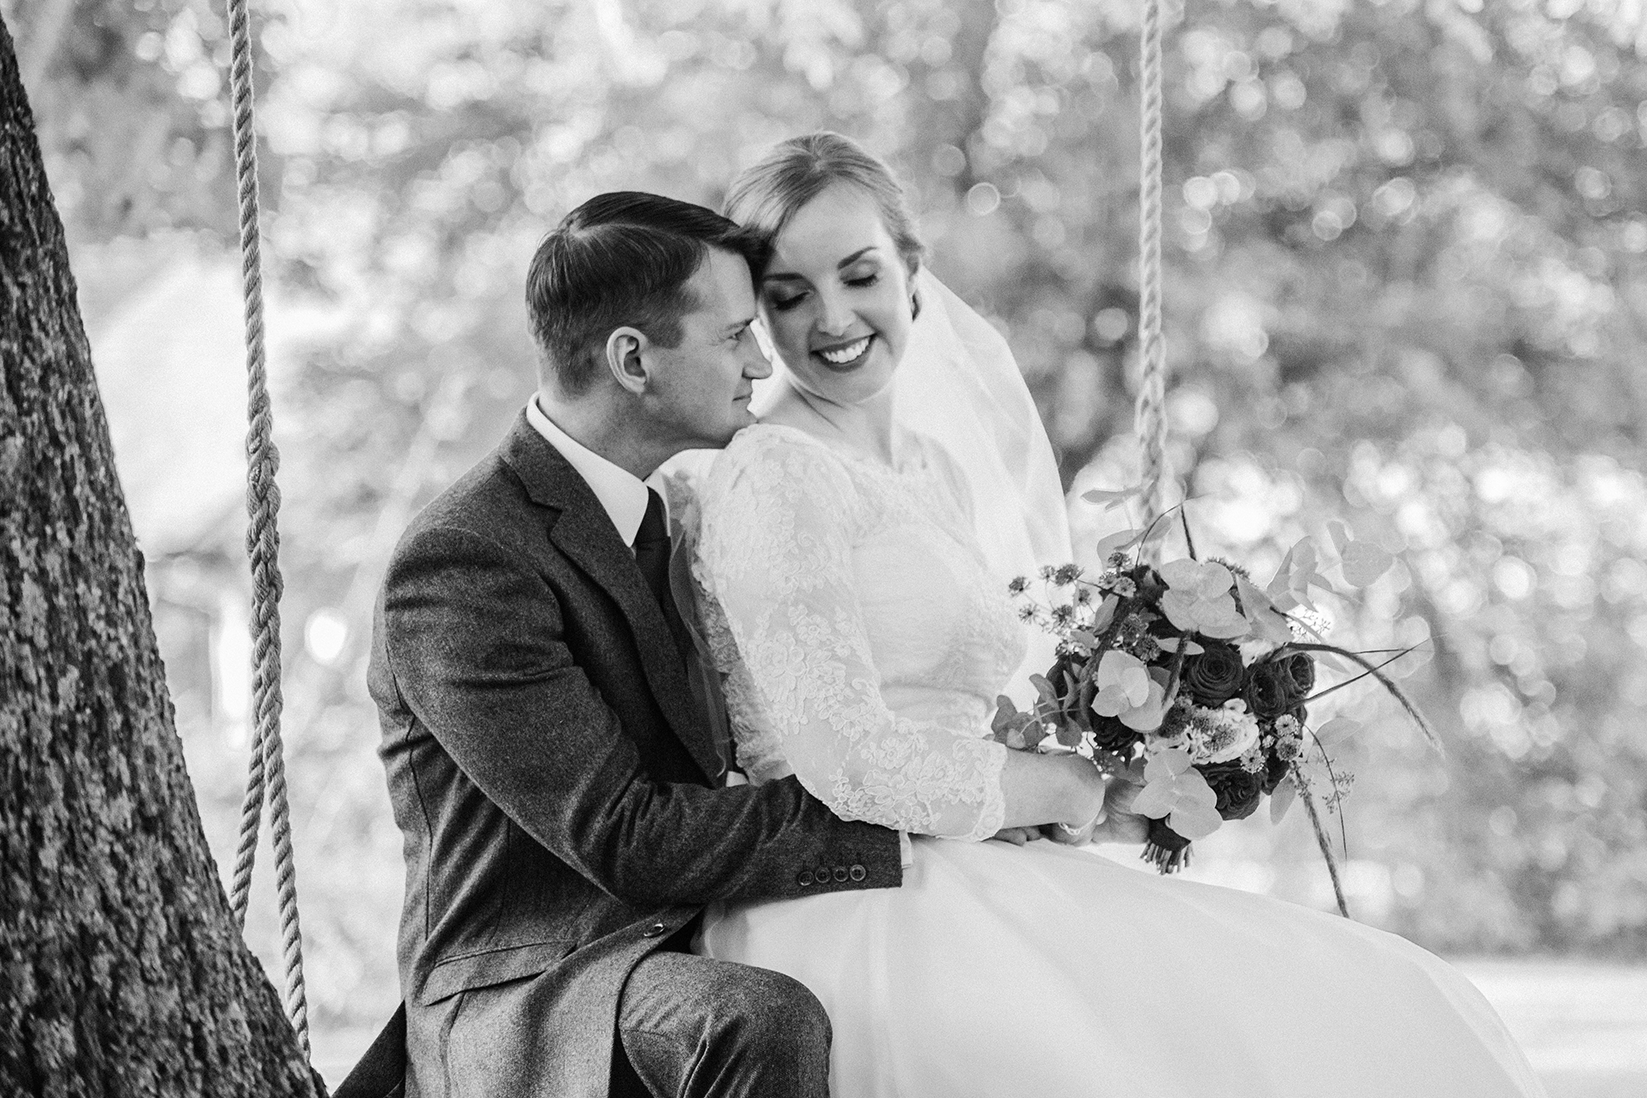 Black and White Portrait of Bride and Groom after their Wedding Ceremony at Wethele Manor in Leamington Spa